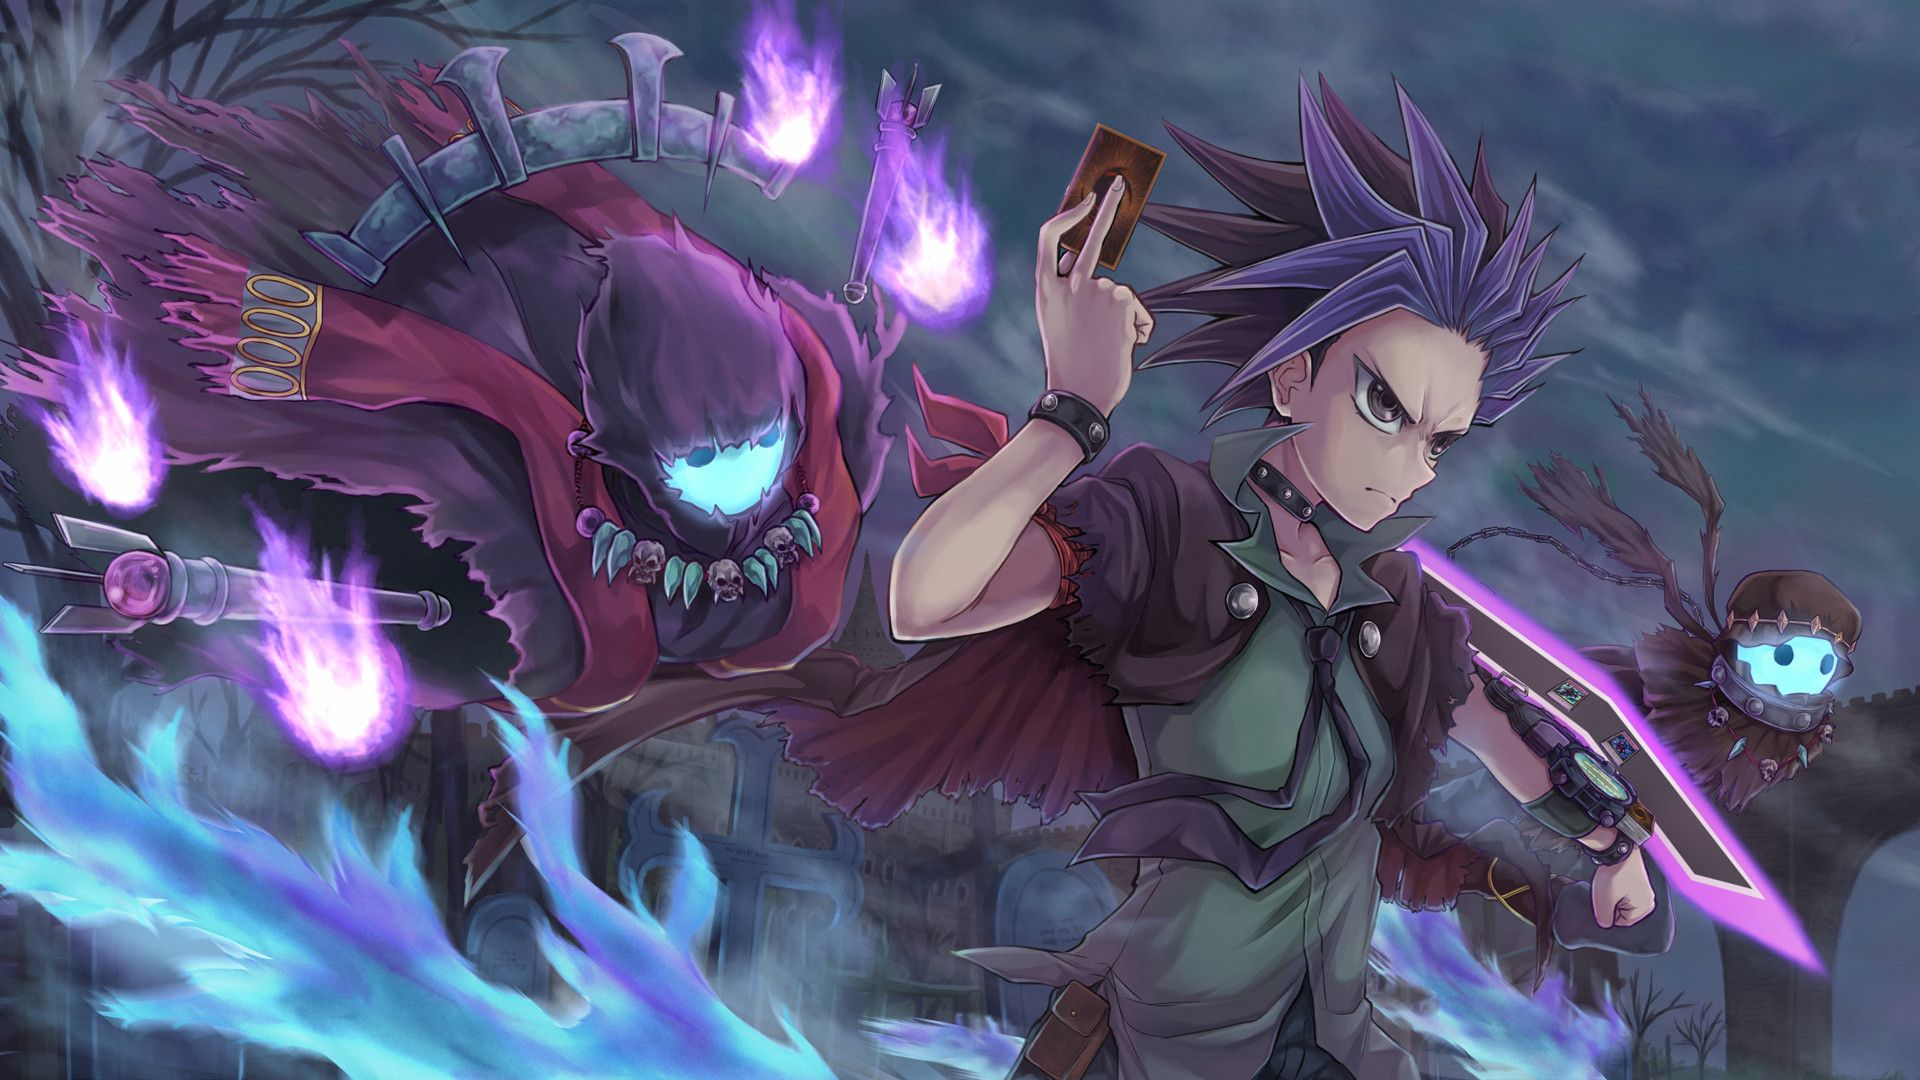 Res 1920x1080 Download Yu Gi Oh Arc V Image Anime Hd Anime Wallpapers Yugioh